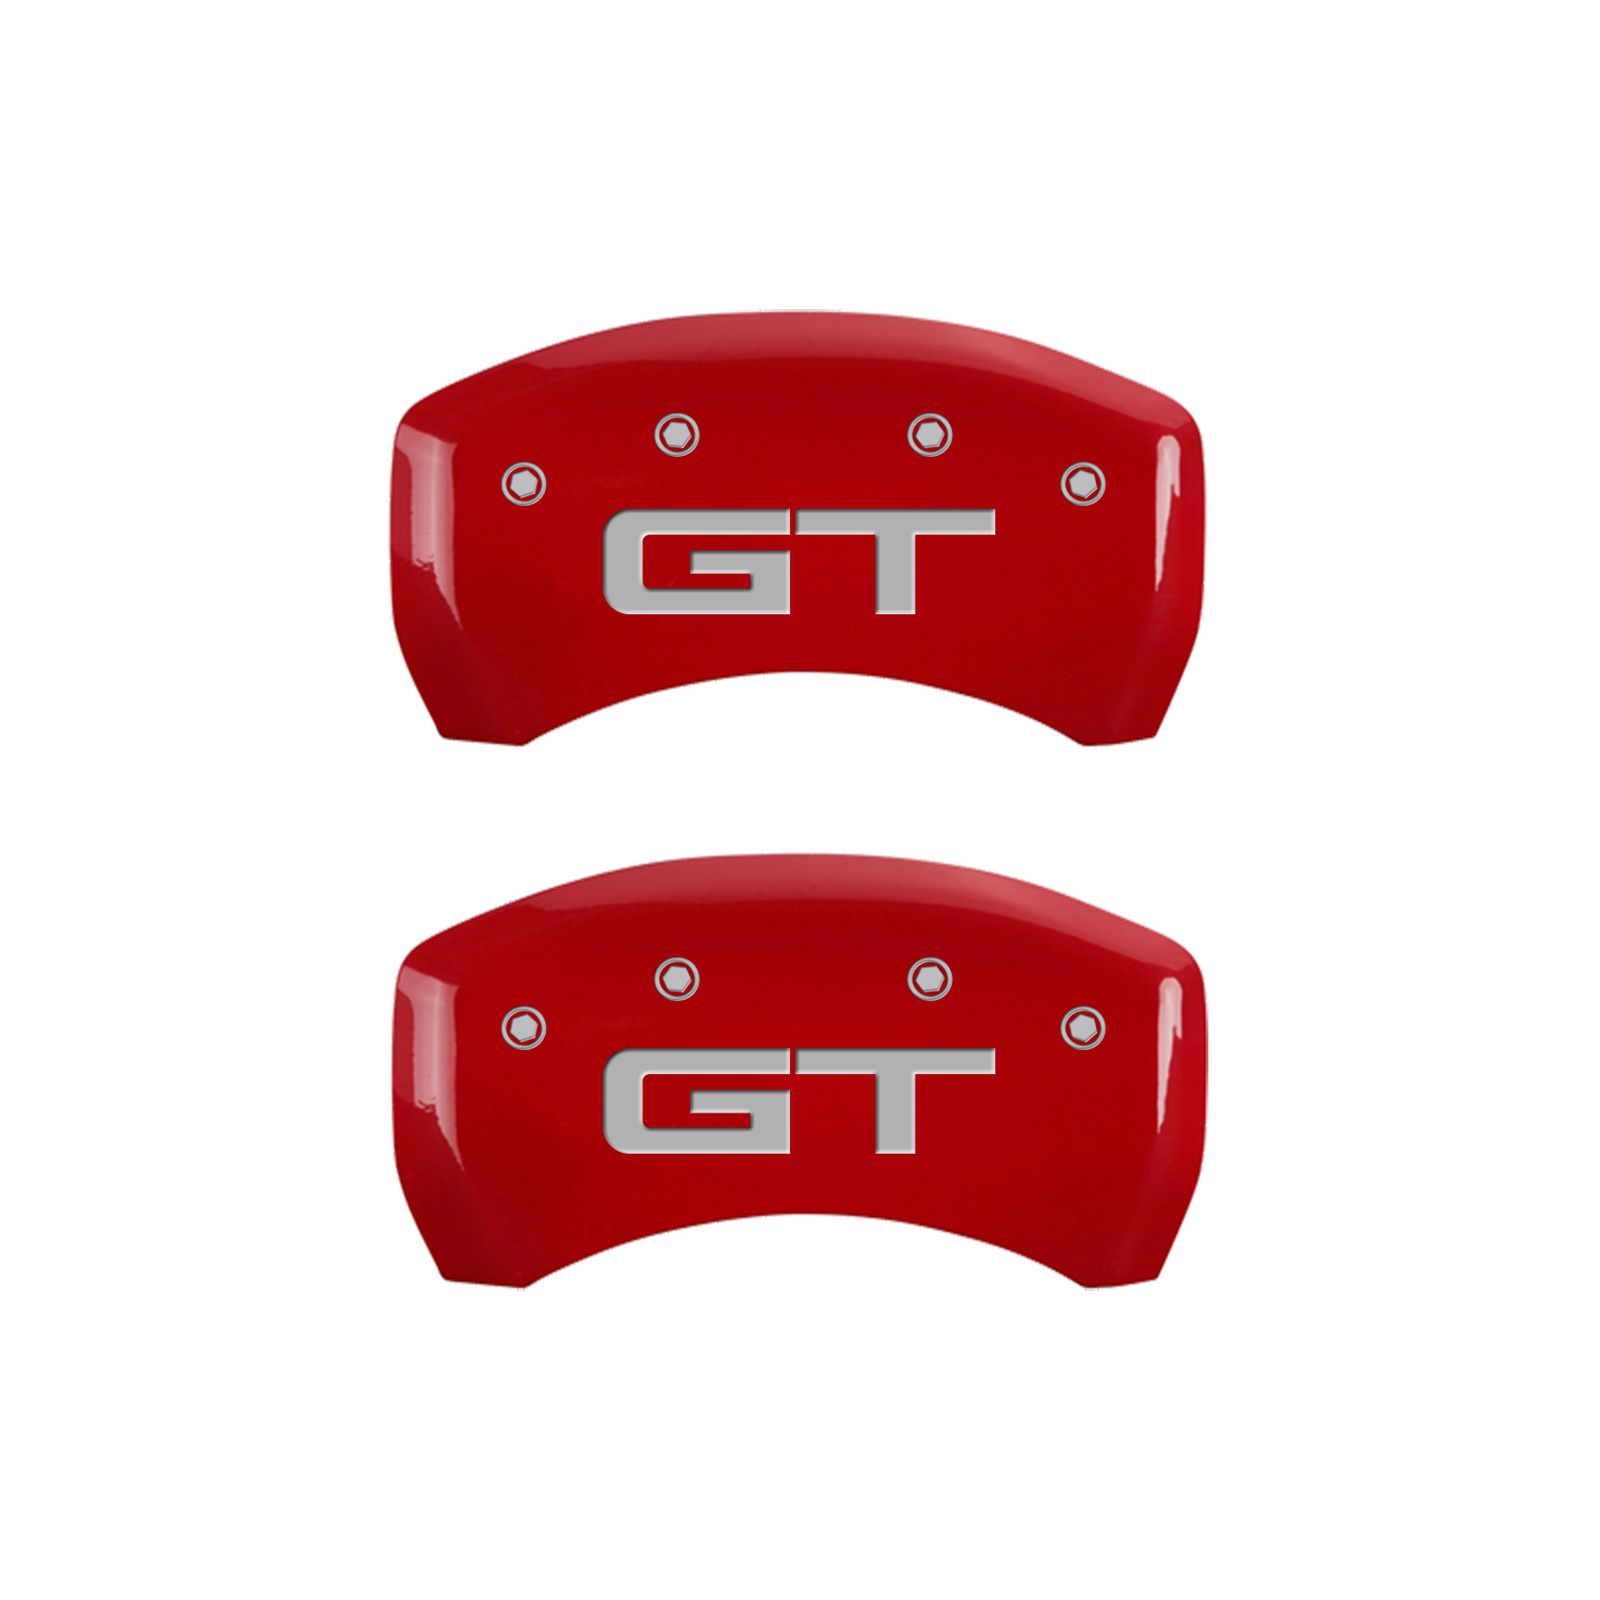 Set of 4 Caliper covers, Engraved Front: Mustang - Engraved Rear: GT - Red powder coat finish, silver characters